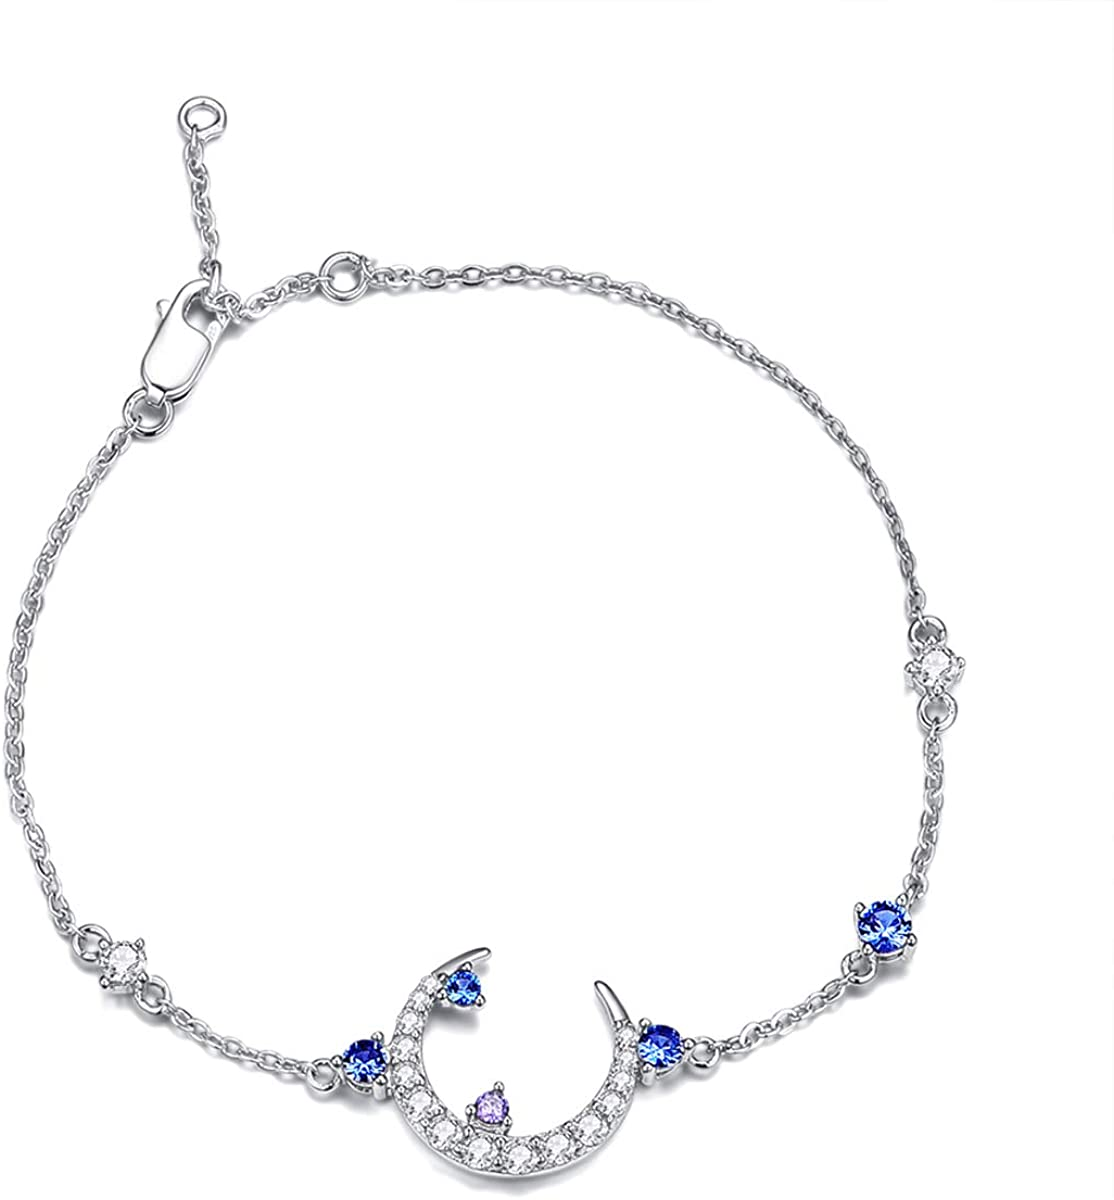 WDM Sterling Silver Bracelets for Women Crescent Moon Link Charms Blue Purple Sapphire White Gold Friendship Bangles Teen Girls Diamond Bracelets Adjustable Chain with Fashion Jewelry Box